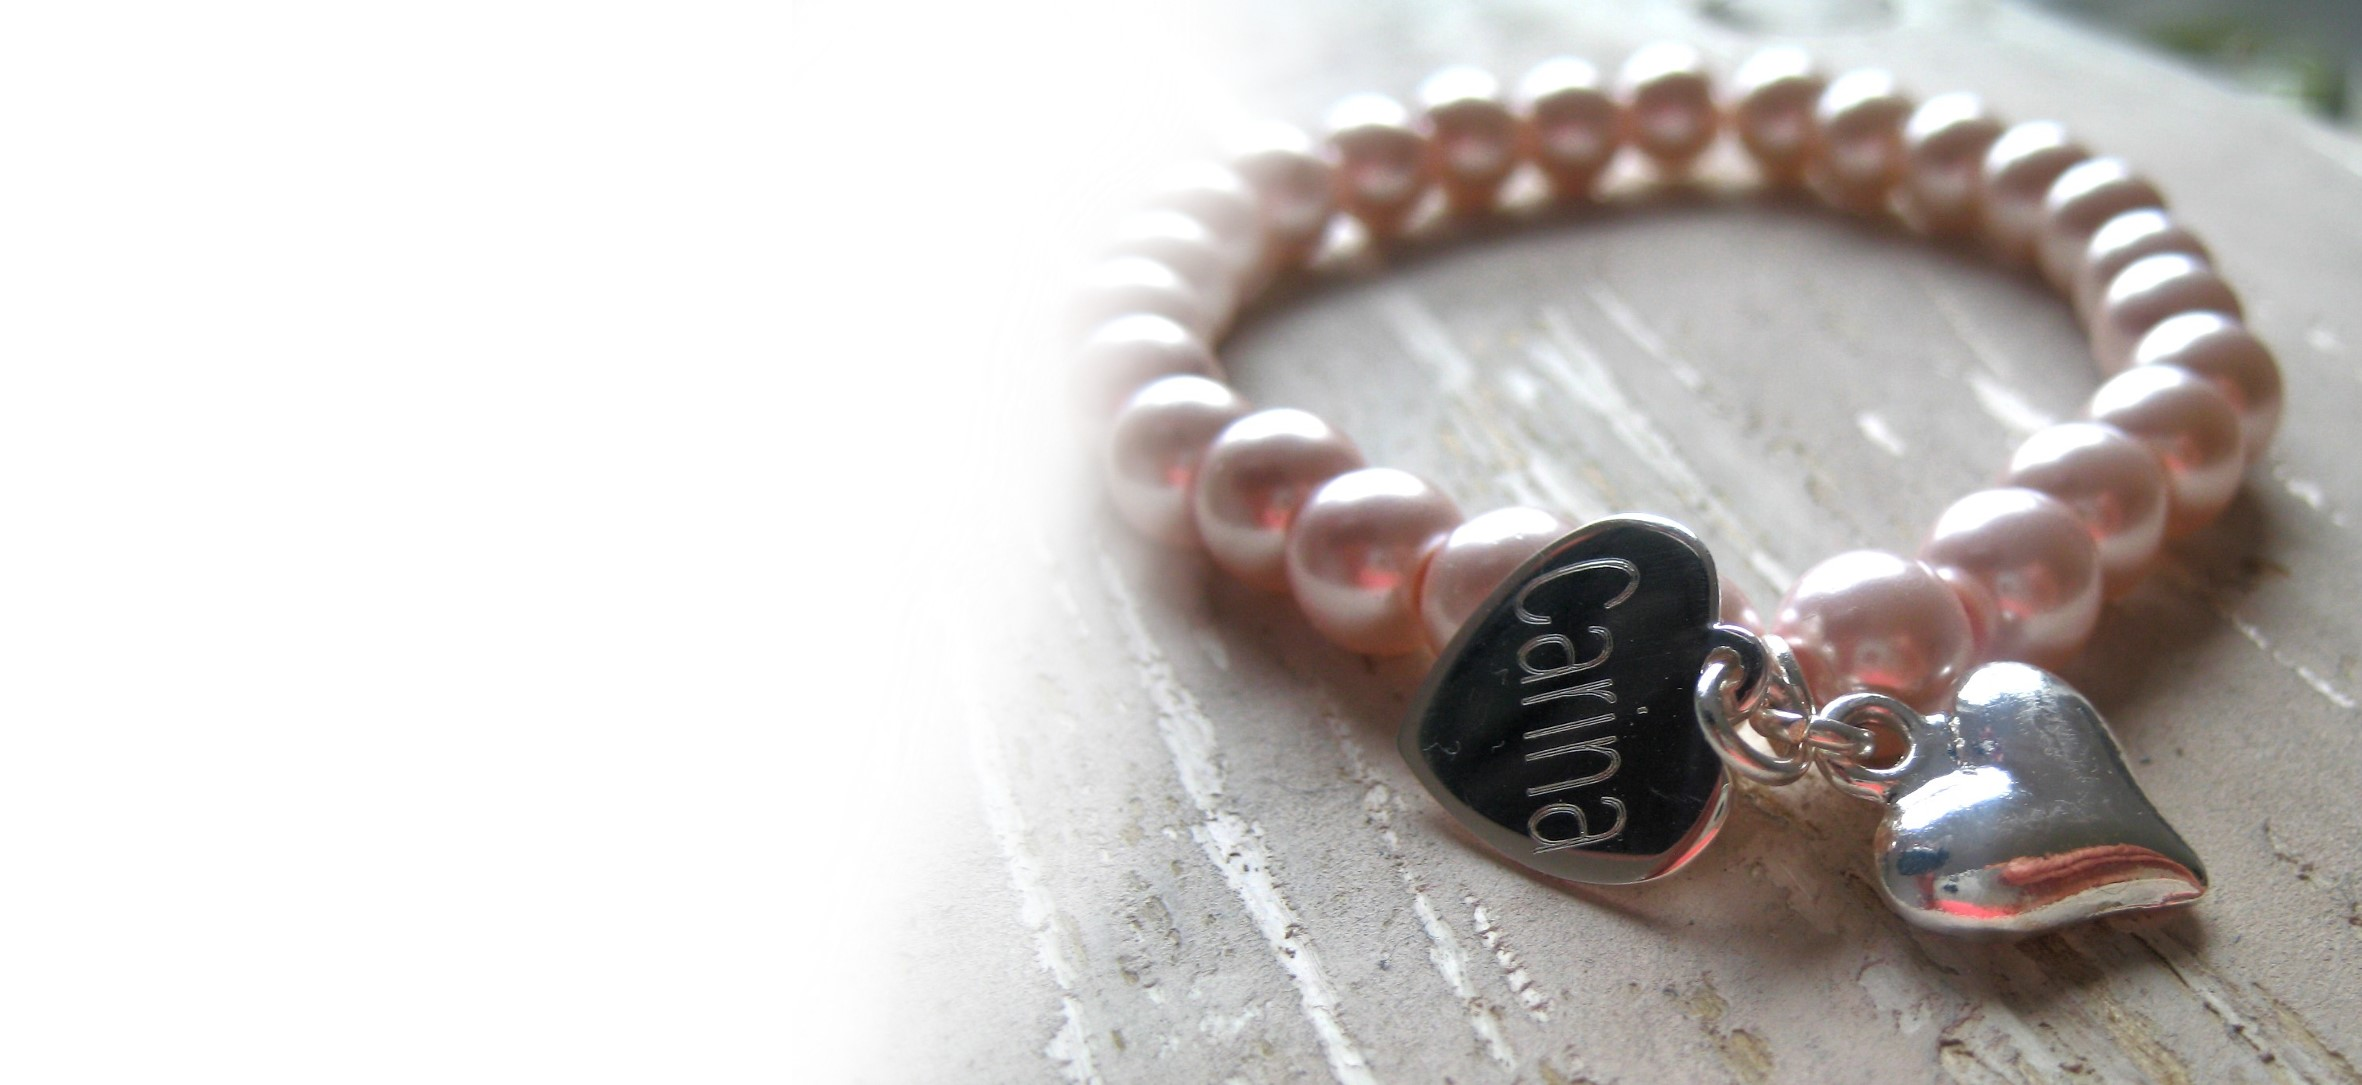 Personalised jewellery gifts for women